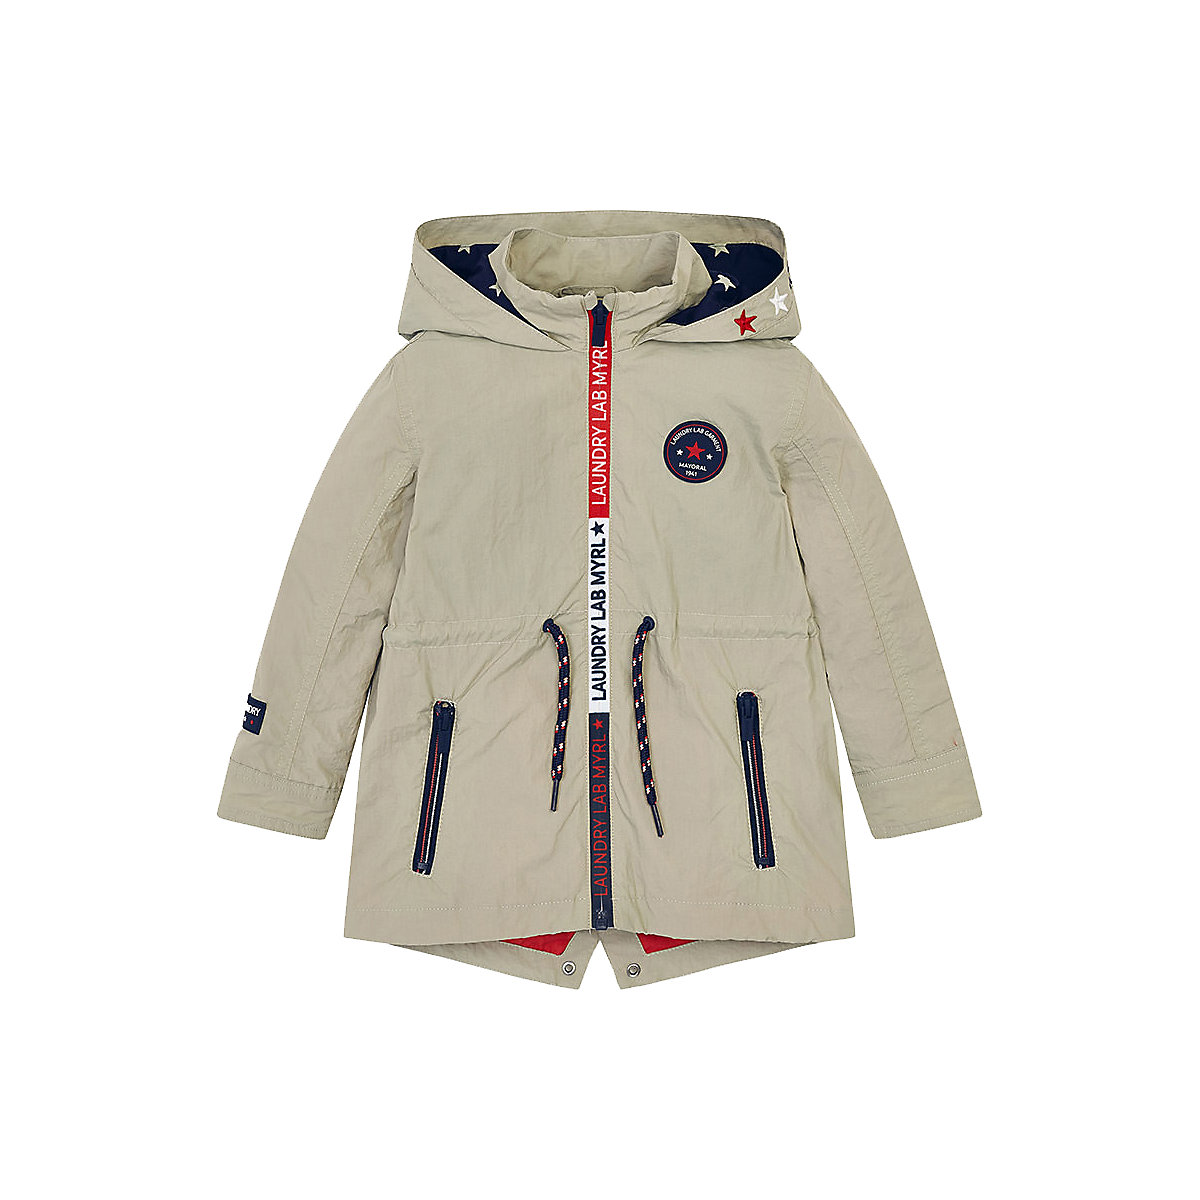 Mayoral Jackets & Coats 10691017 jacket for boys coat baby clothes children clothing outwear boy icebear 2018 new men s winter jacket warm detachable hat male short coat fashion casual apparel man brand clothing mwd18813d